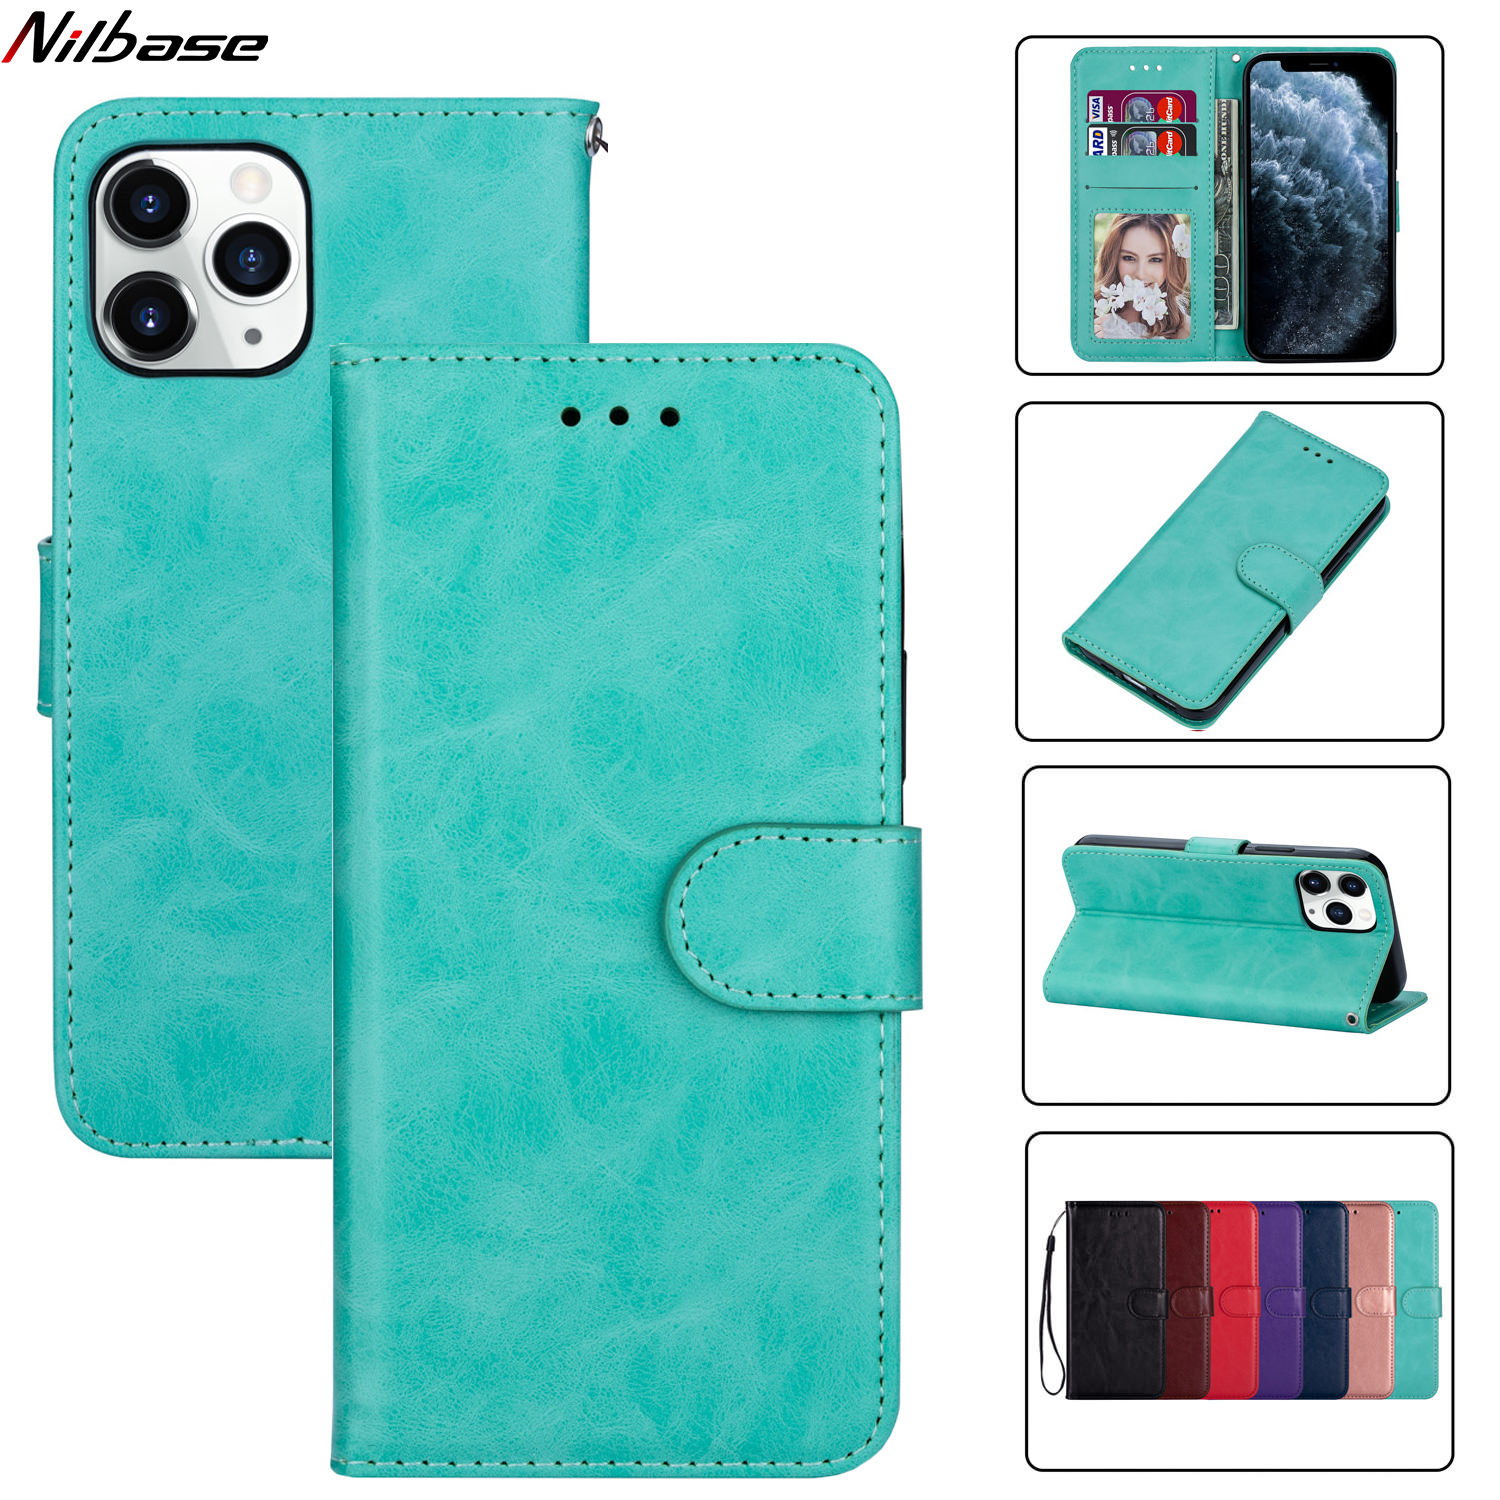 Luxury Leather Case For iPhone 12 Mini 11 Pro Max X XS XR 8 7 6 6s Plus 5 SE 2020 Wallet Flip Plain Card Stand Phone Cover Coque